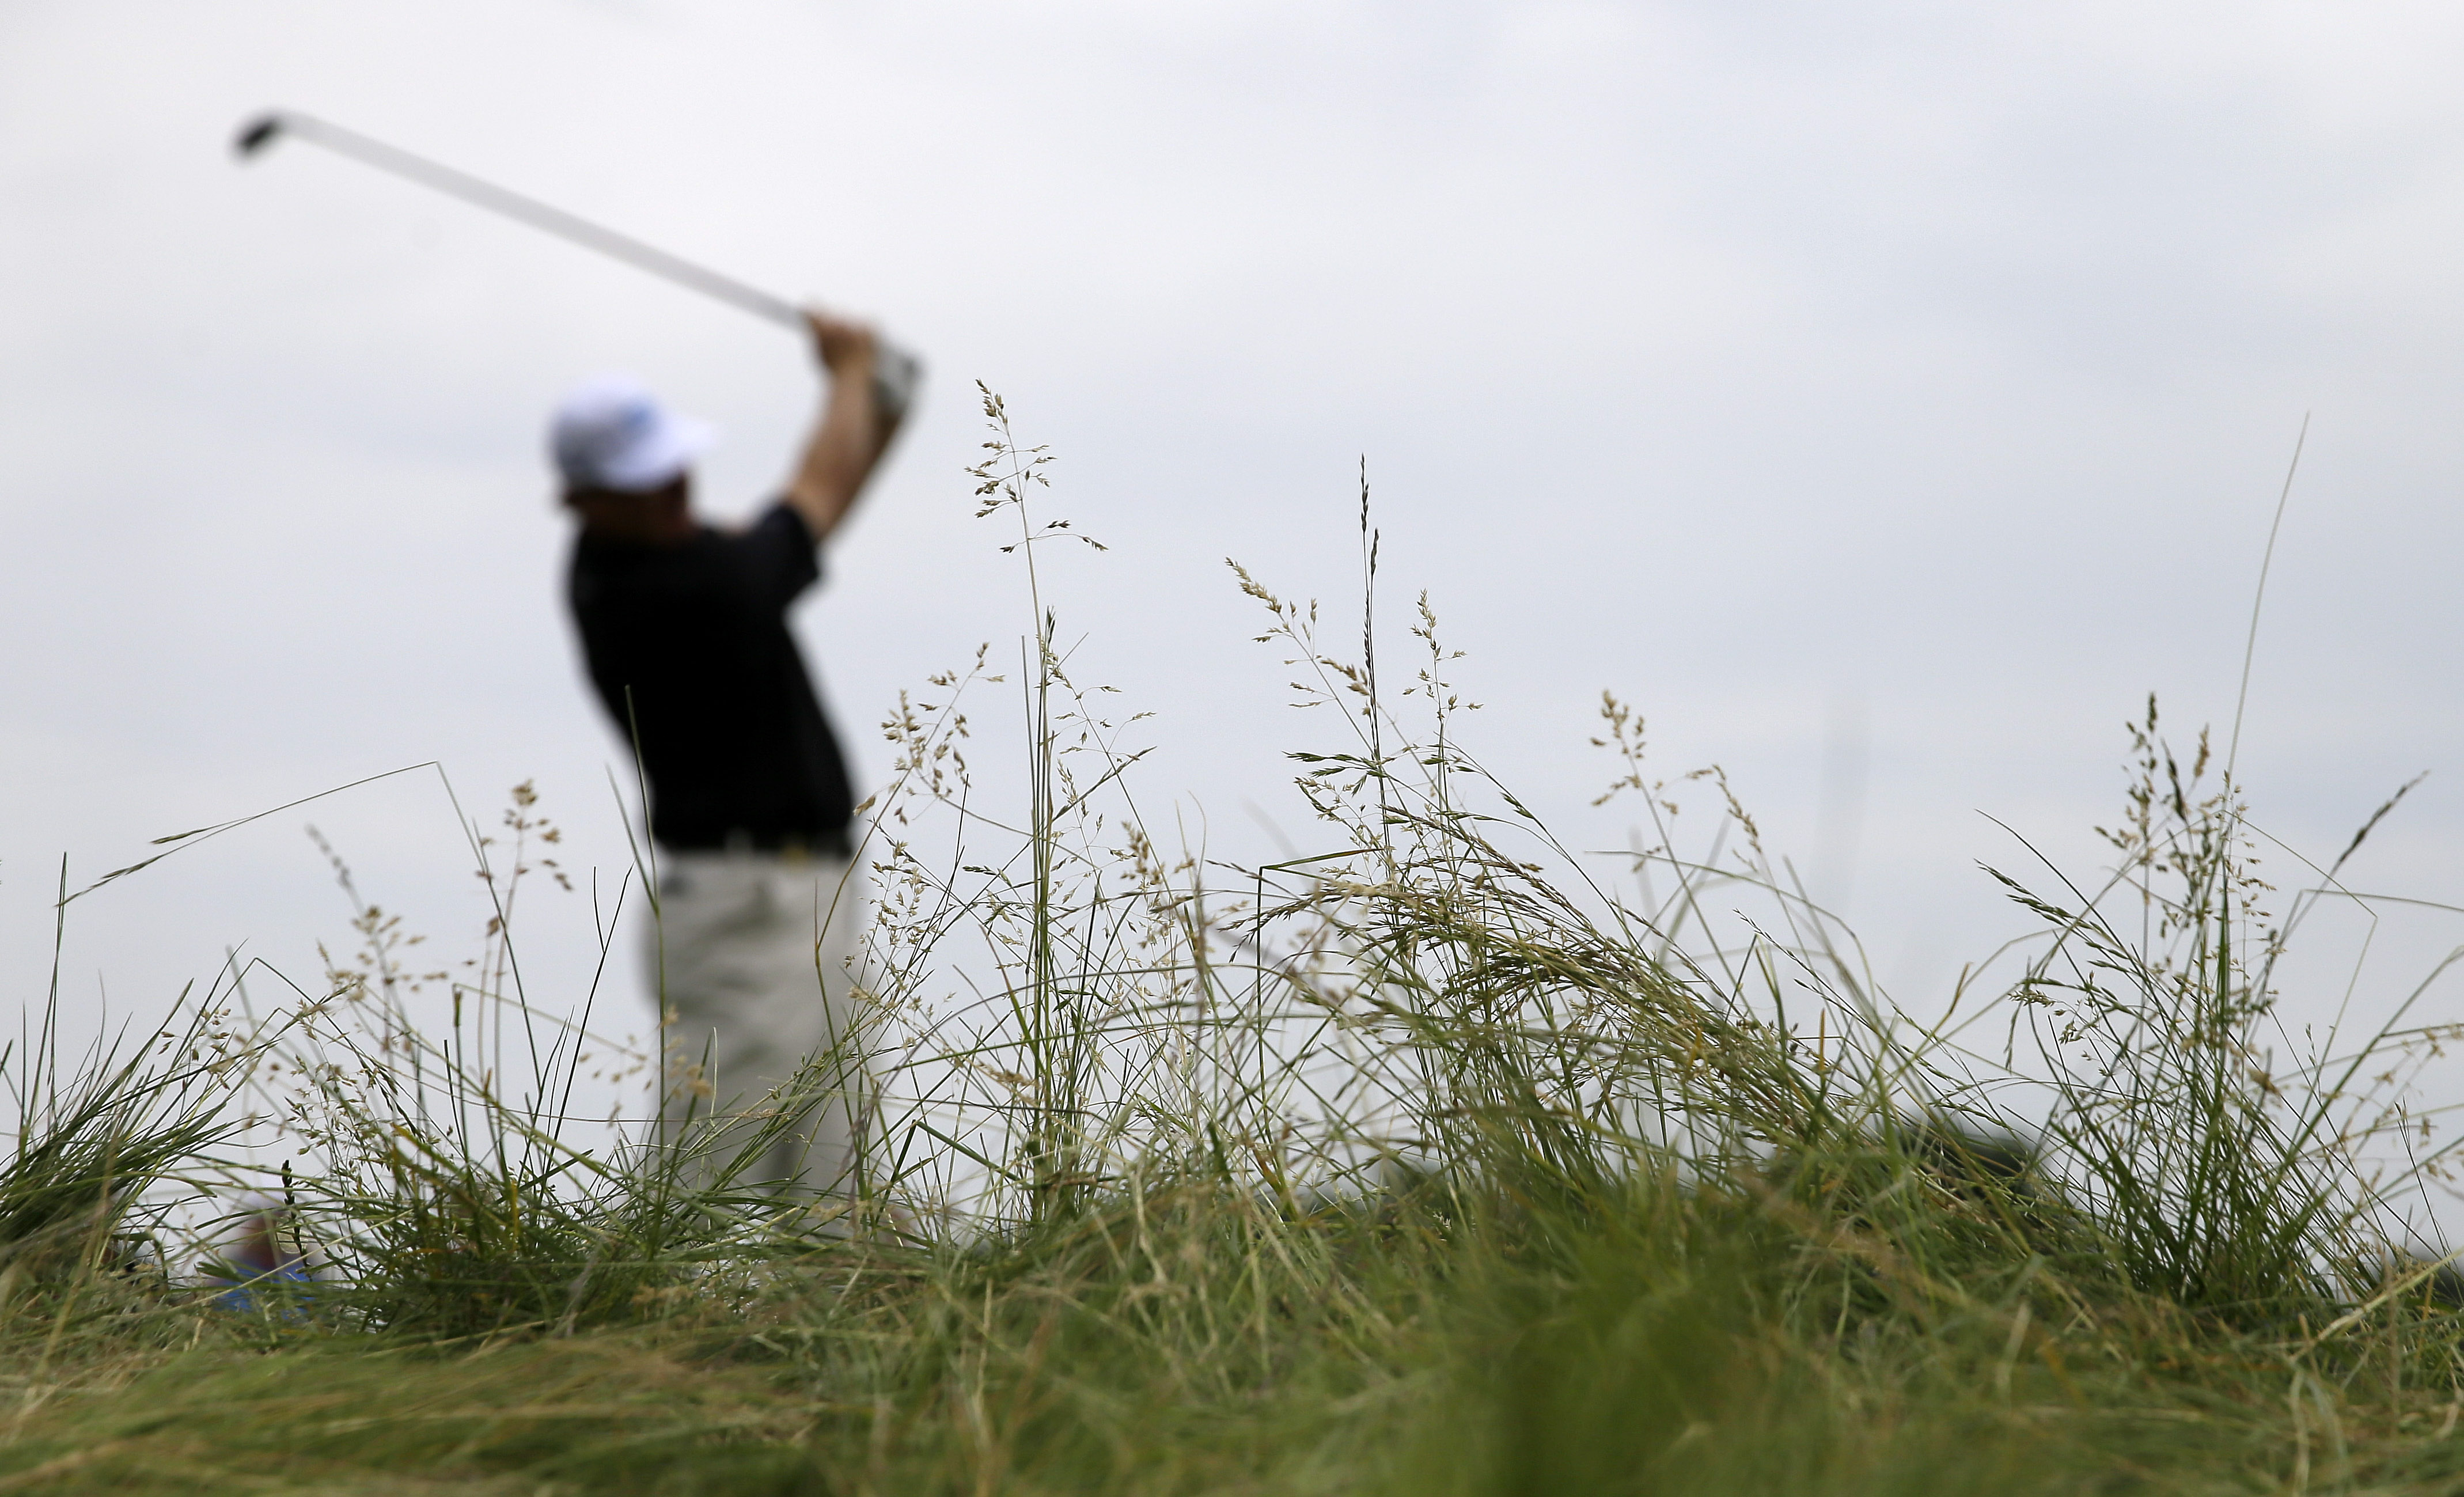 Ernie Els, of South Africa, watches his tee shot on the seventh hole during a practice round for the U.S. Open golf championship at Oakmont Country Club on Wednesday, June 15, 2016, in Oakmont, Pa. (AP Photo/John Minchillo)